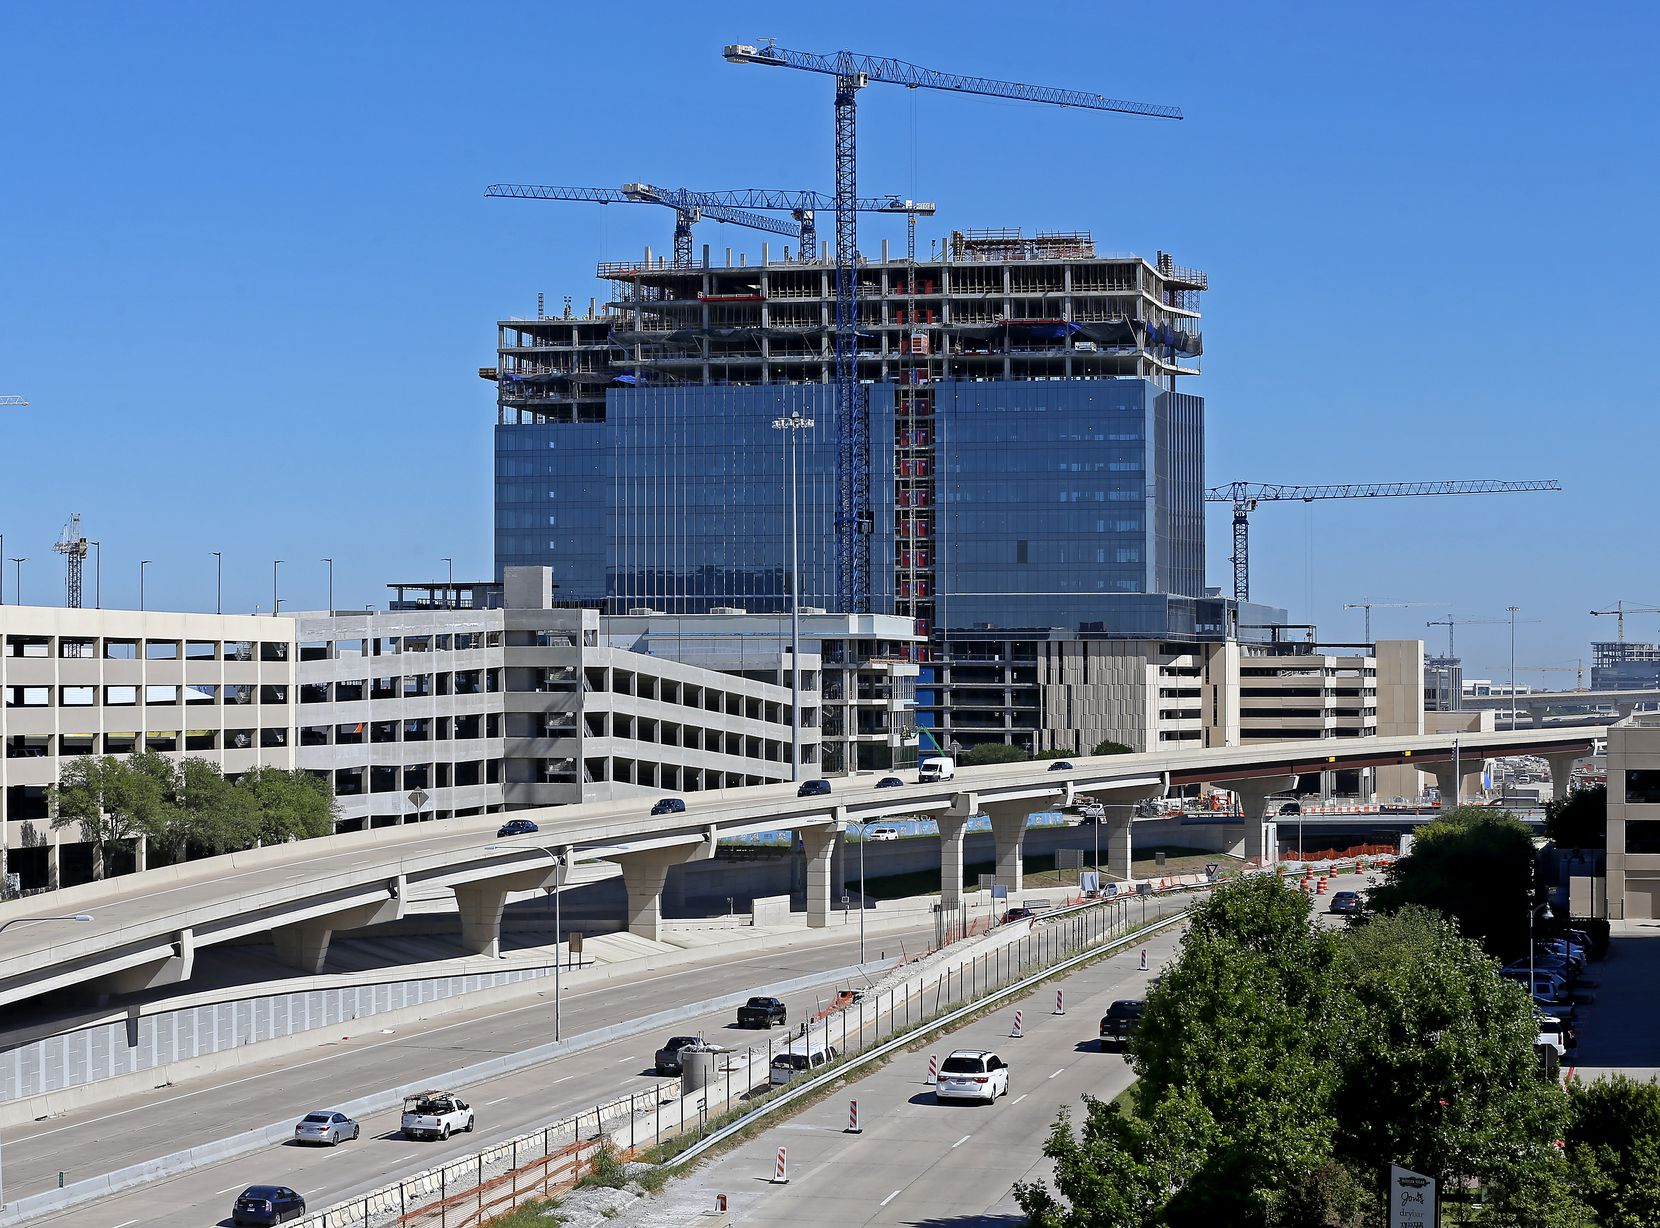 New construction, as seen in this 2019 photo, has ticked off a lot of Plano residents who are worried about traffic and density as thousands of newcomers move into the area.